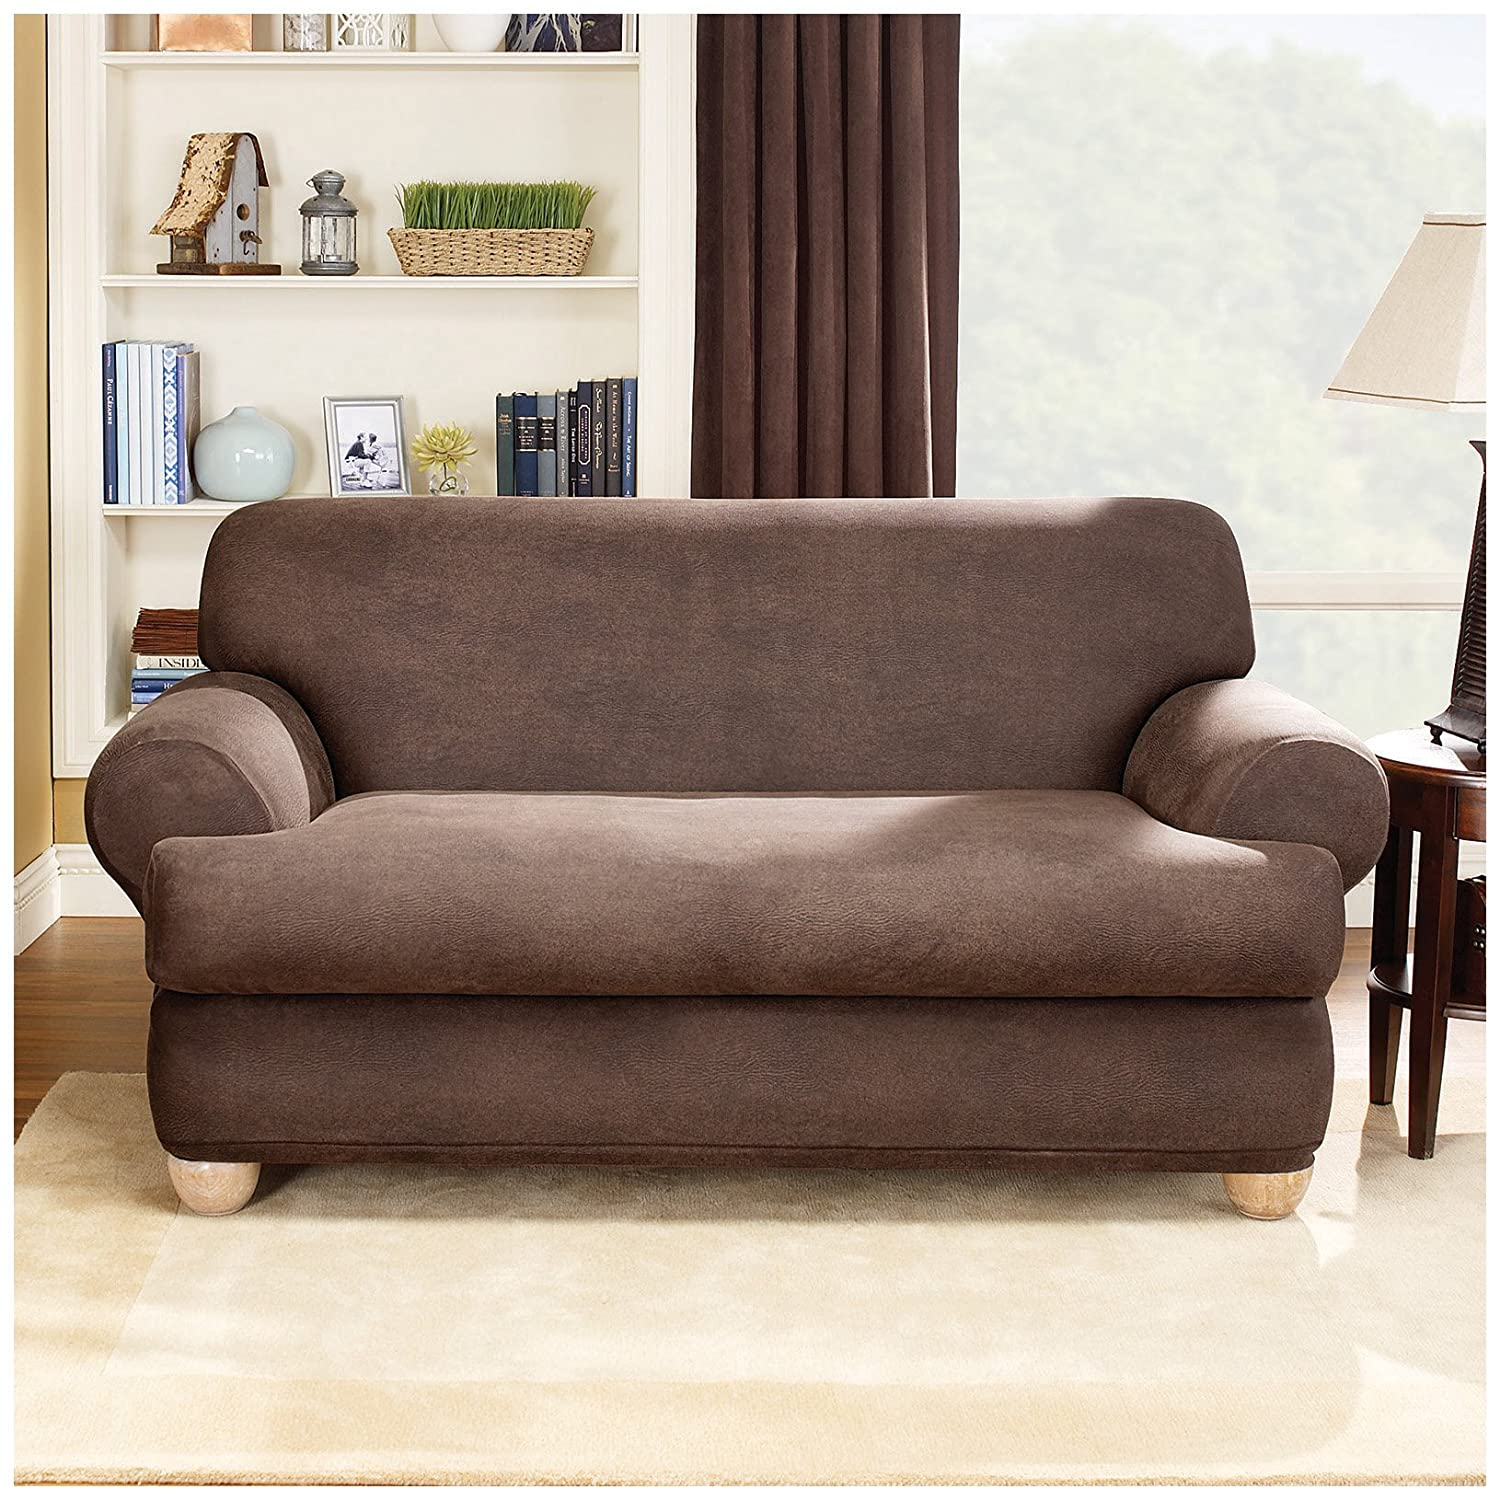 Amazon Sure Fit Stretch Leather 2 Piece Loveseat Slipcover